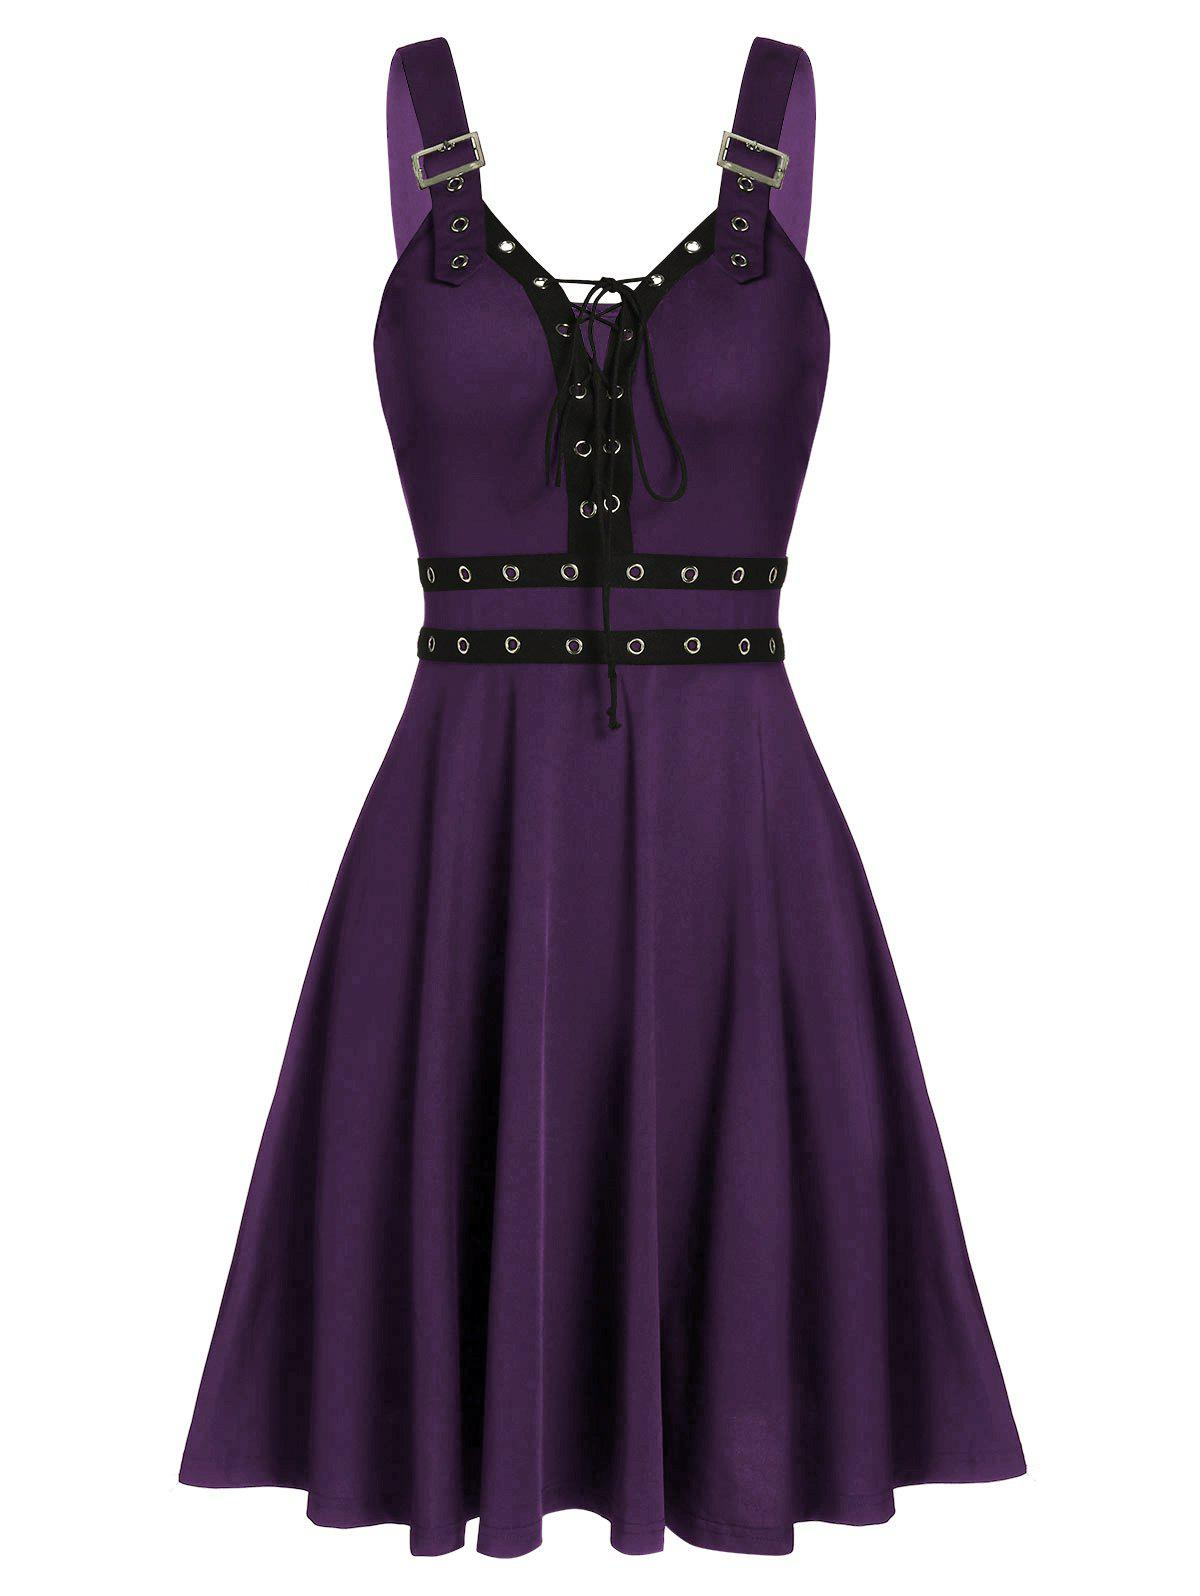 Lace Up Solid Fit And Flare Gothic Dress - PURPLE IRIS L